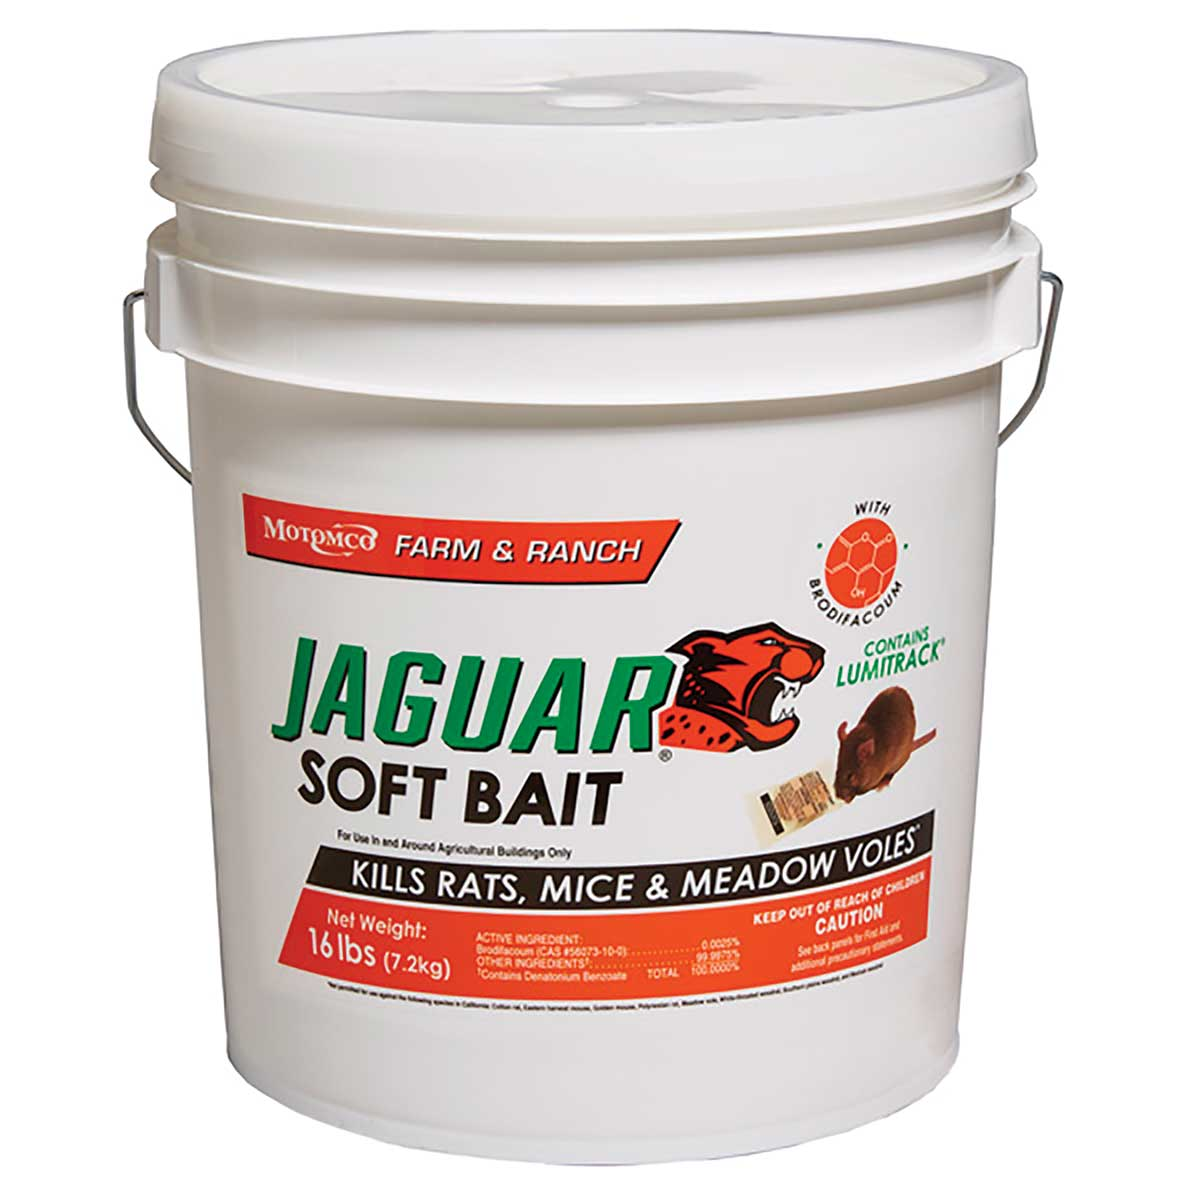 Jaguar Soft Bait